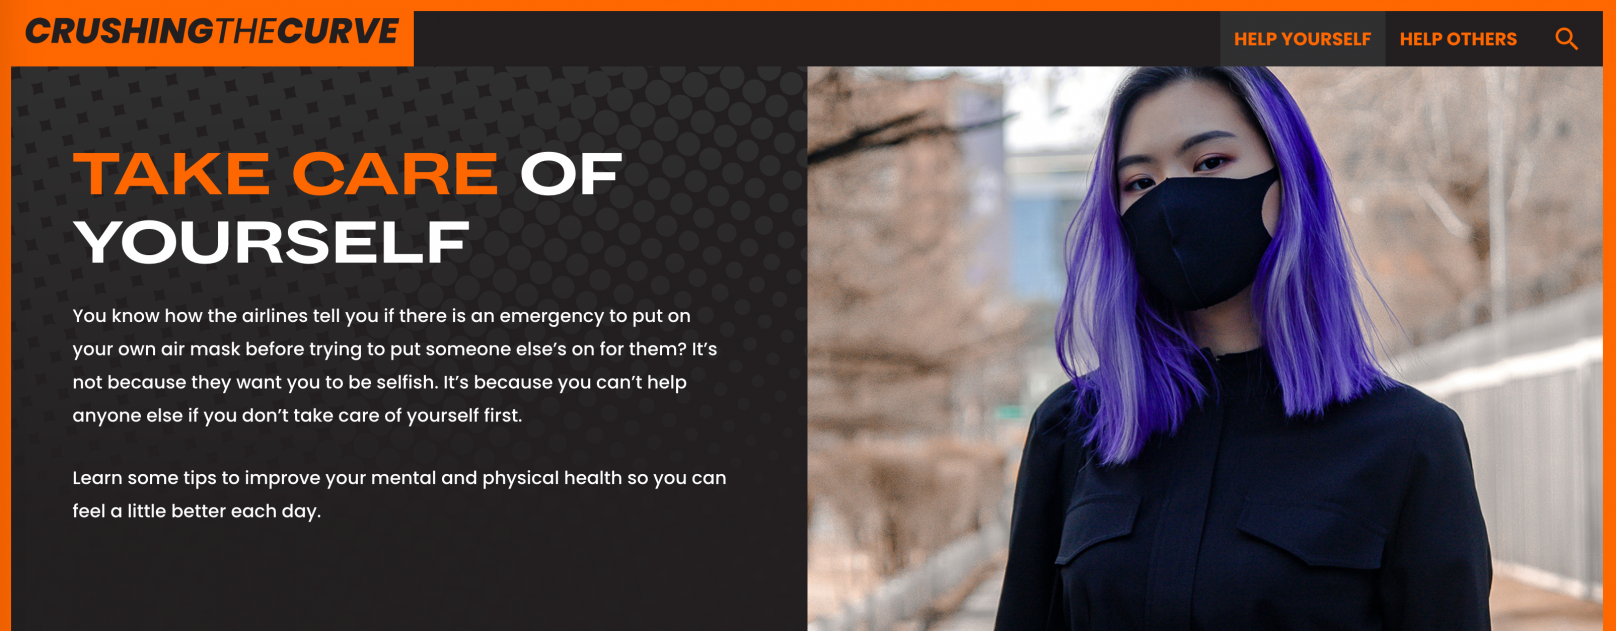 "Text says ""Take care of yourself"" next to image of person of Asian descent with purple hair and a black face mask"